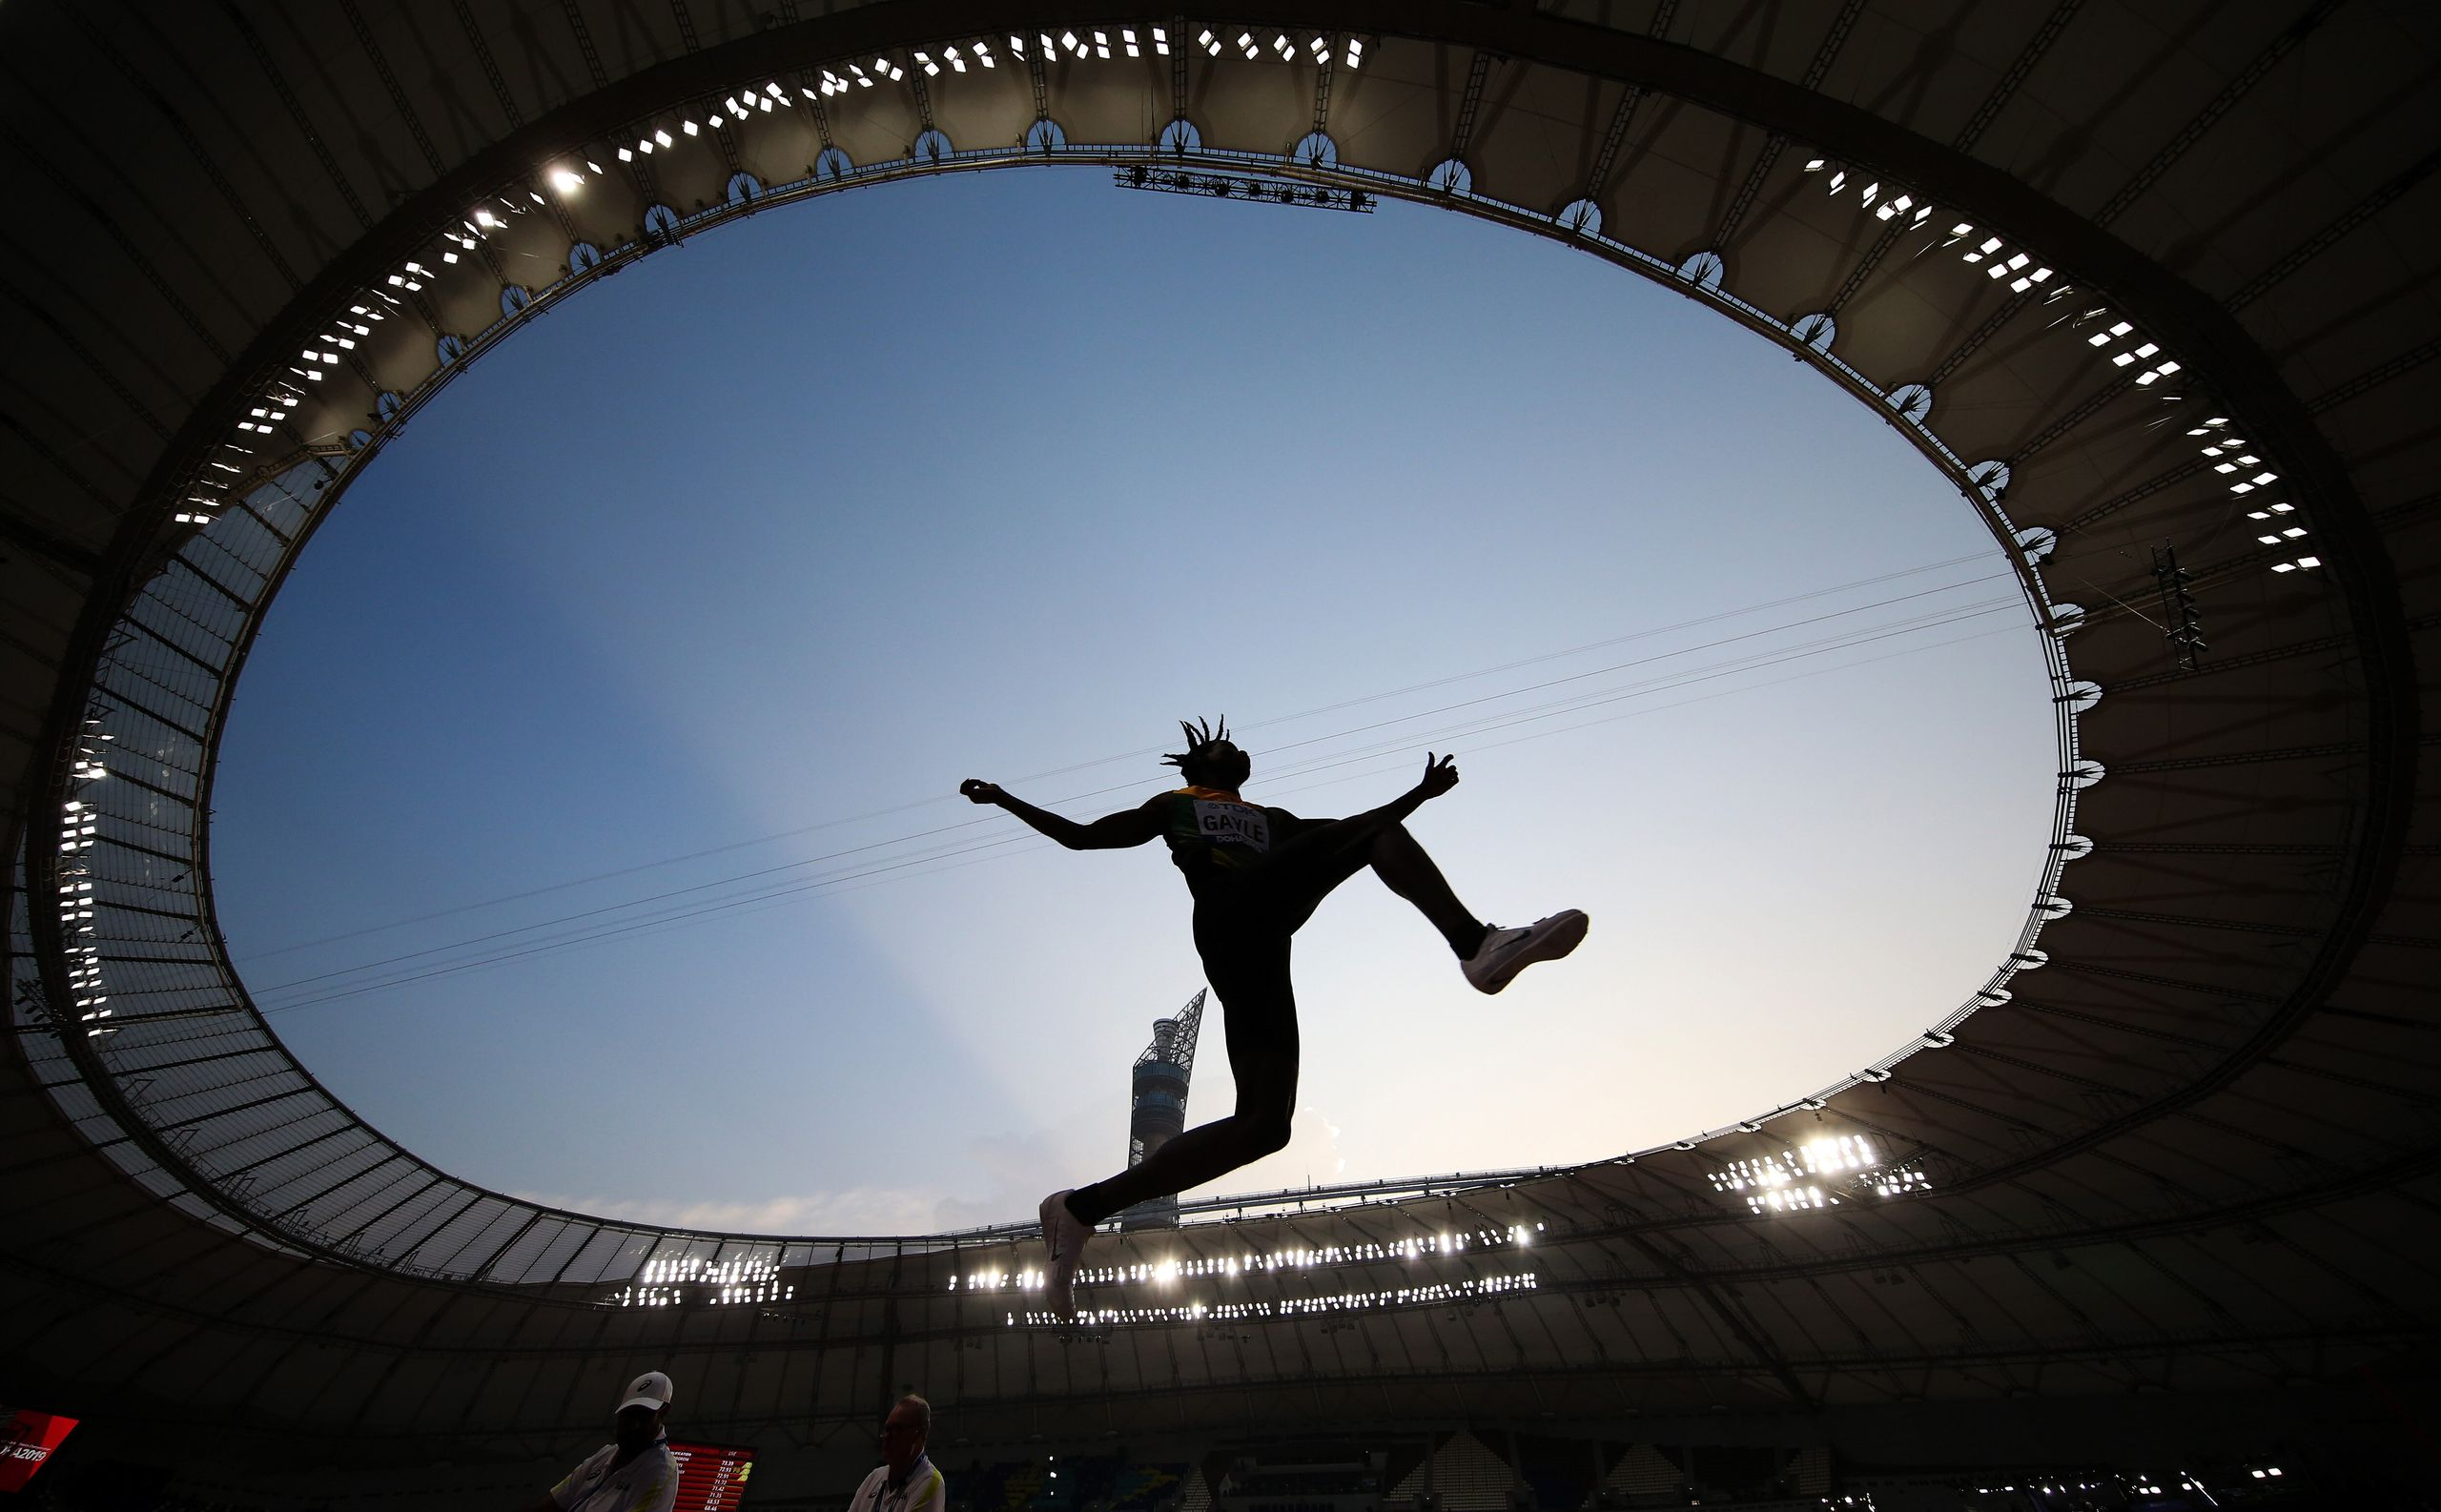 DOHA, QATAR - SEPTEMBER 27: Tajay Gayle of Jamaica competes in the Men's Long Jump qualification during day one of 17th IAAF